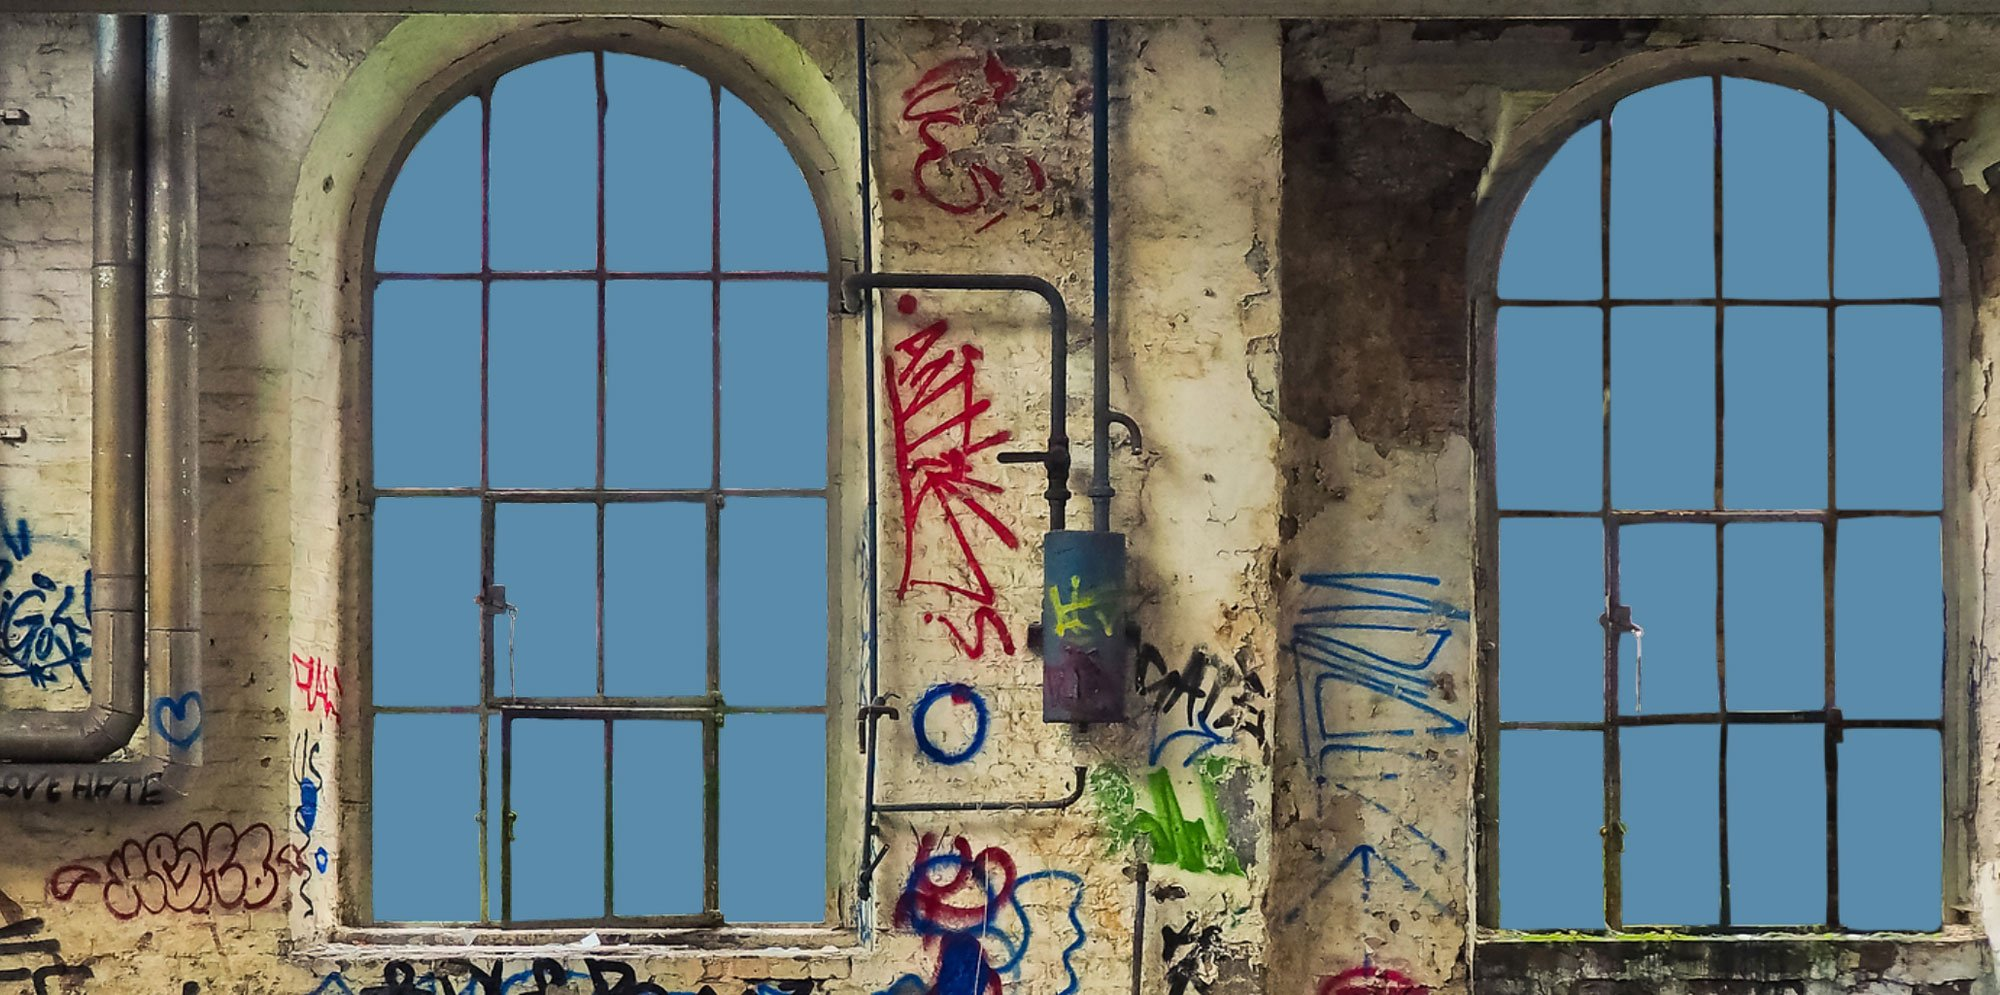 The Local: Two arched windows showing blue sky among graffiti-covered walls